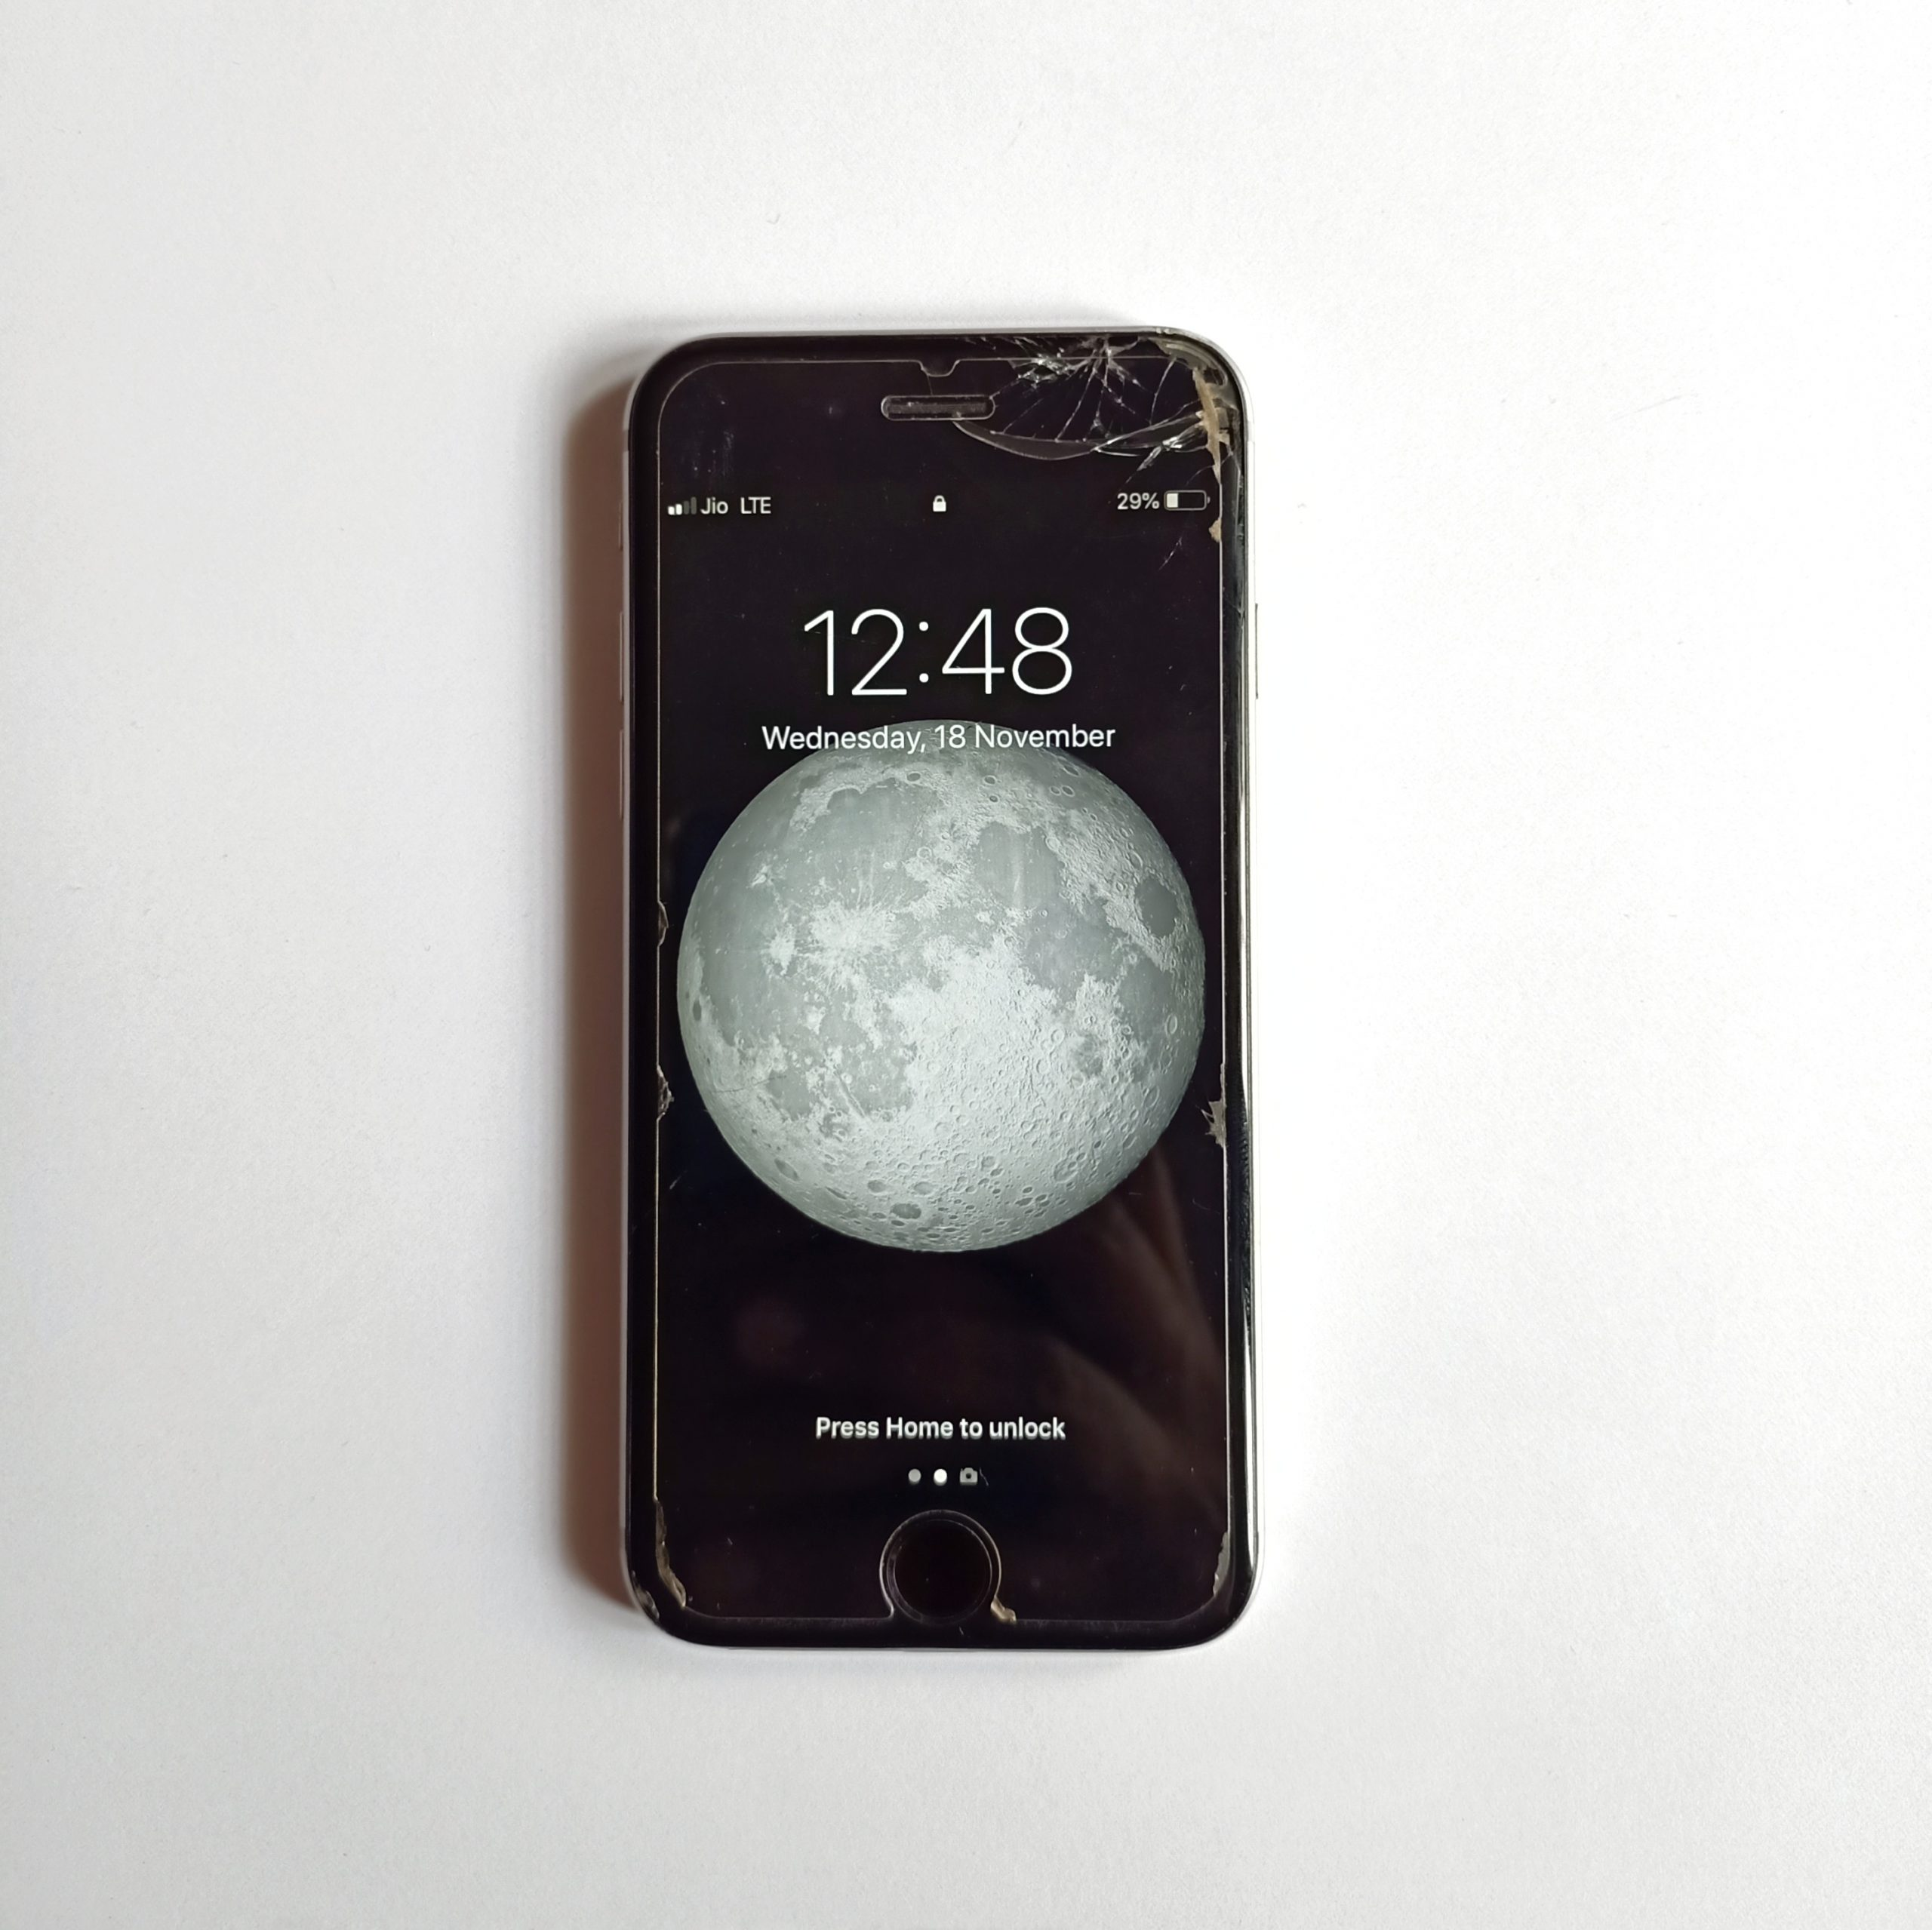 An old Apple iPhone 6